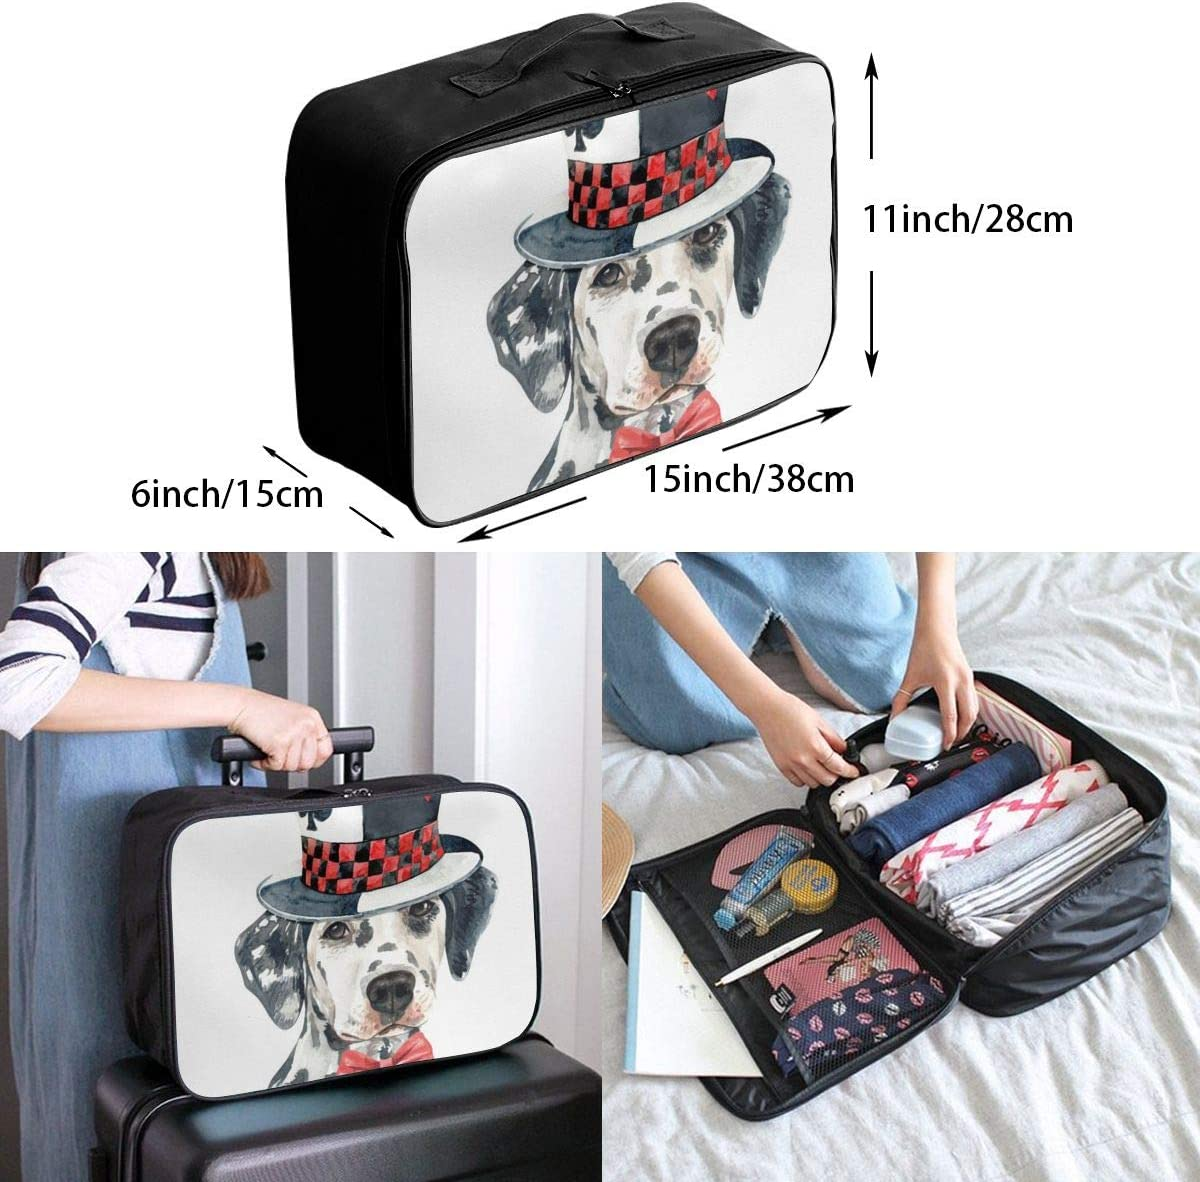 Dalmatian Dog Magic Top Hat Lightweight LargeTravel Storage Luggage Trolley Bag Travel Duffel Bags Carry-On Tote